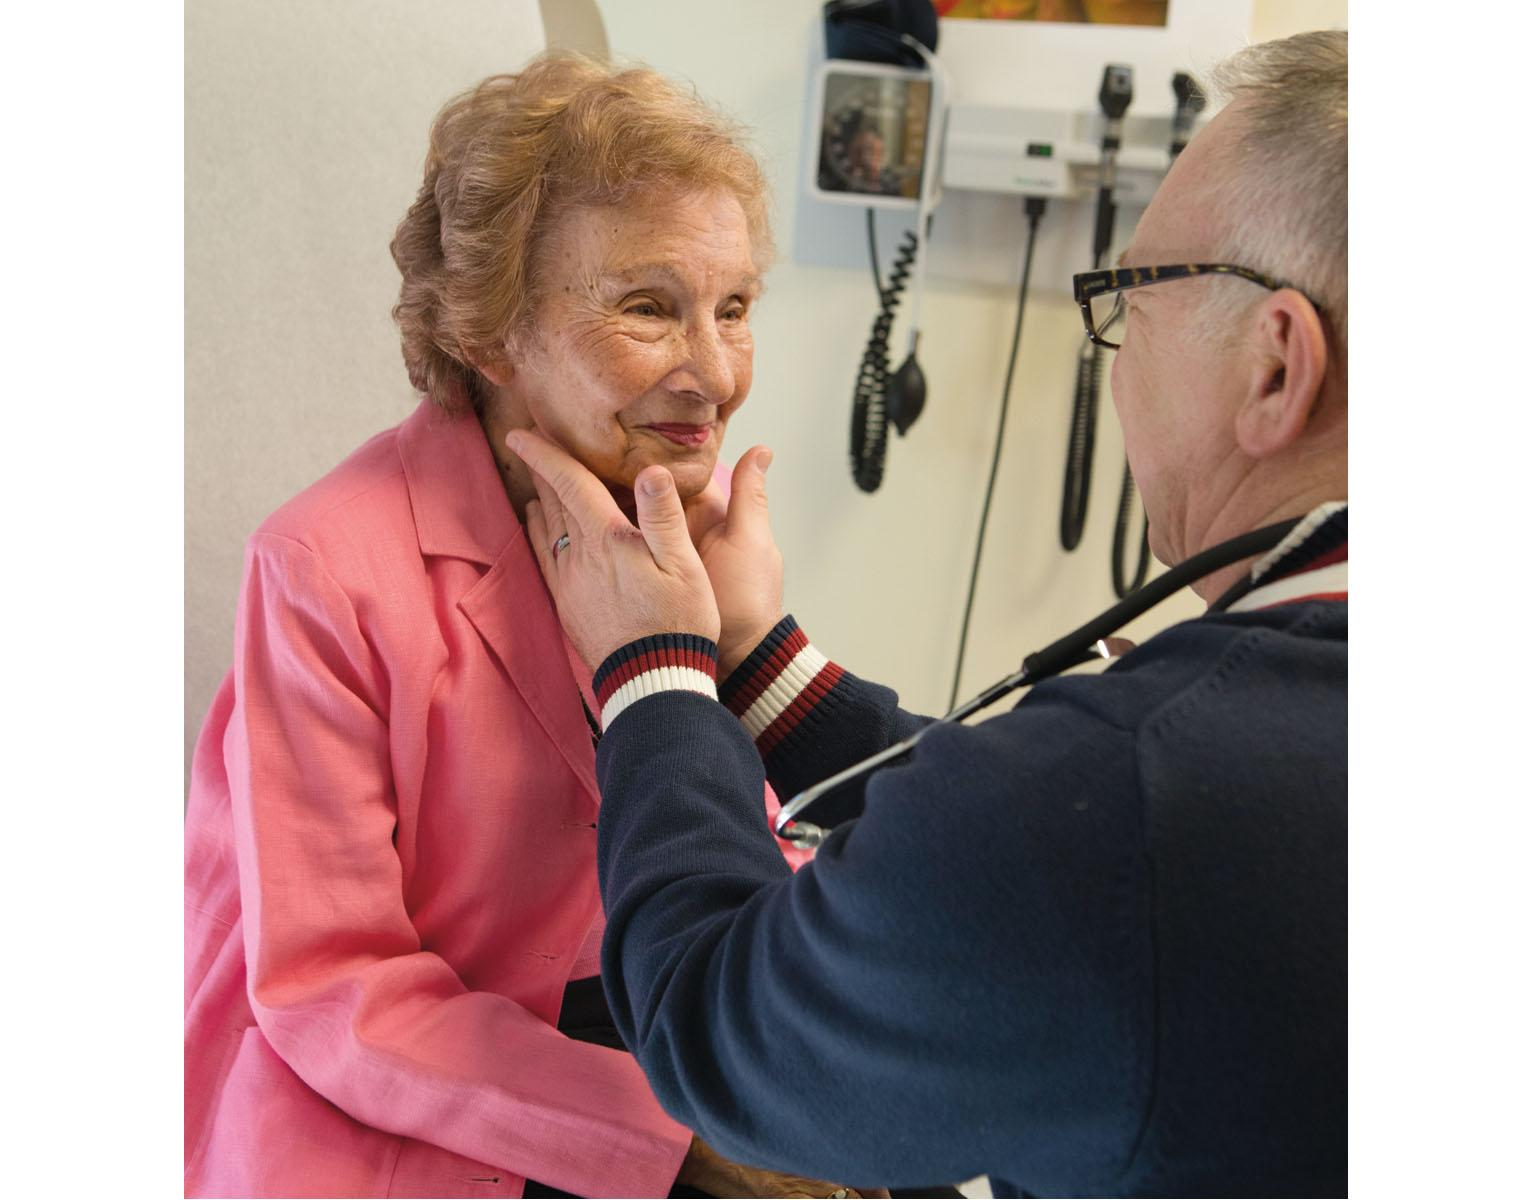 Older adult in pink sweater interacts with a doctor during a visit.